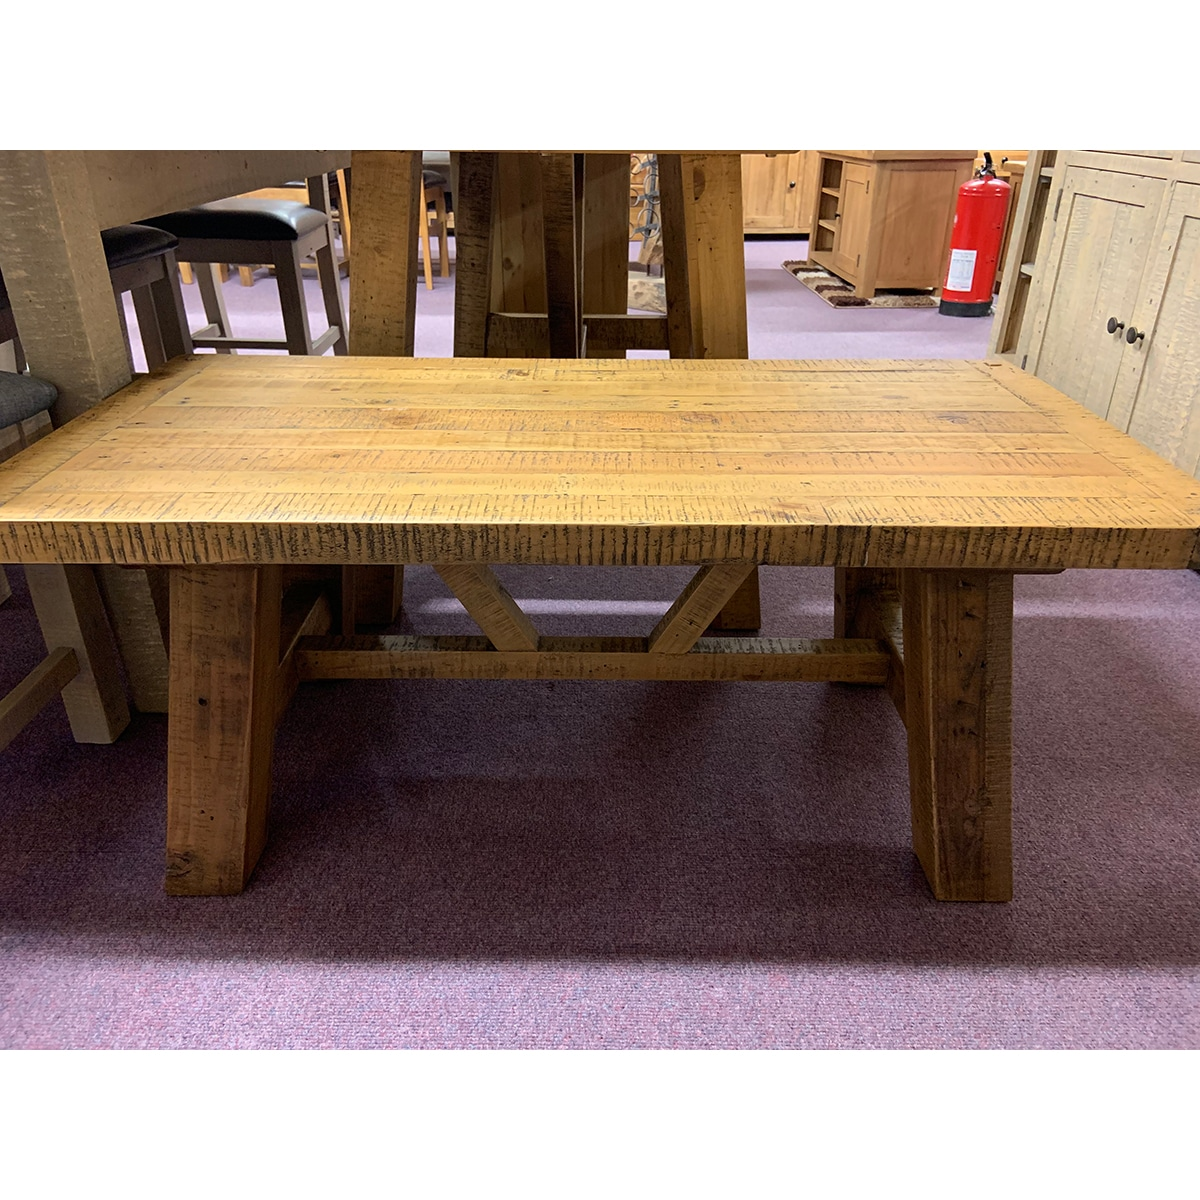 The Witterings Trestle Coffee Table- WIT2732N